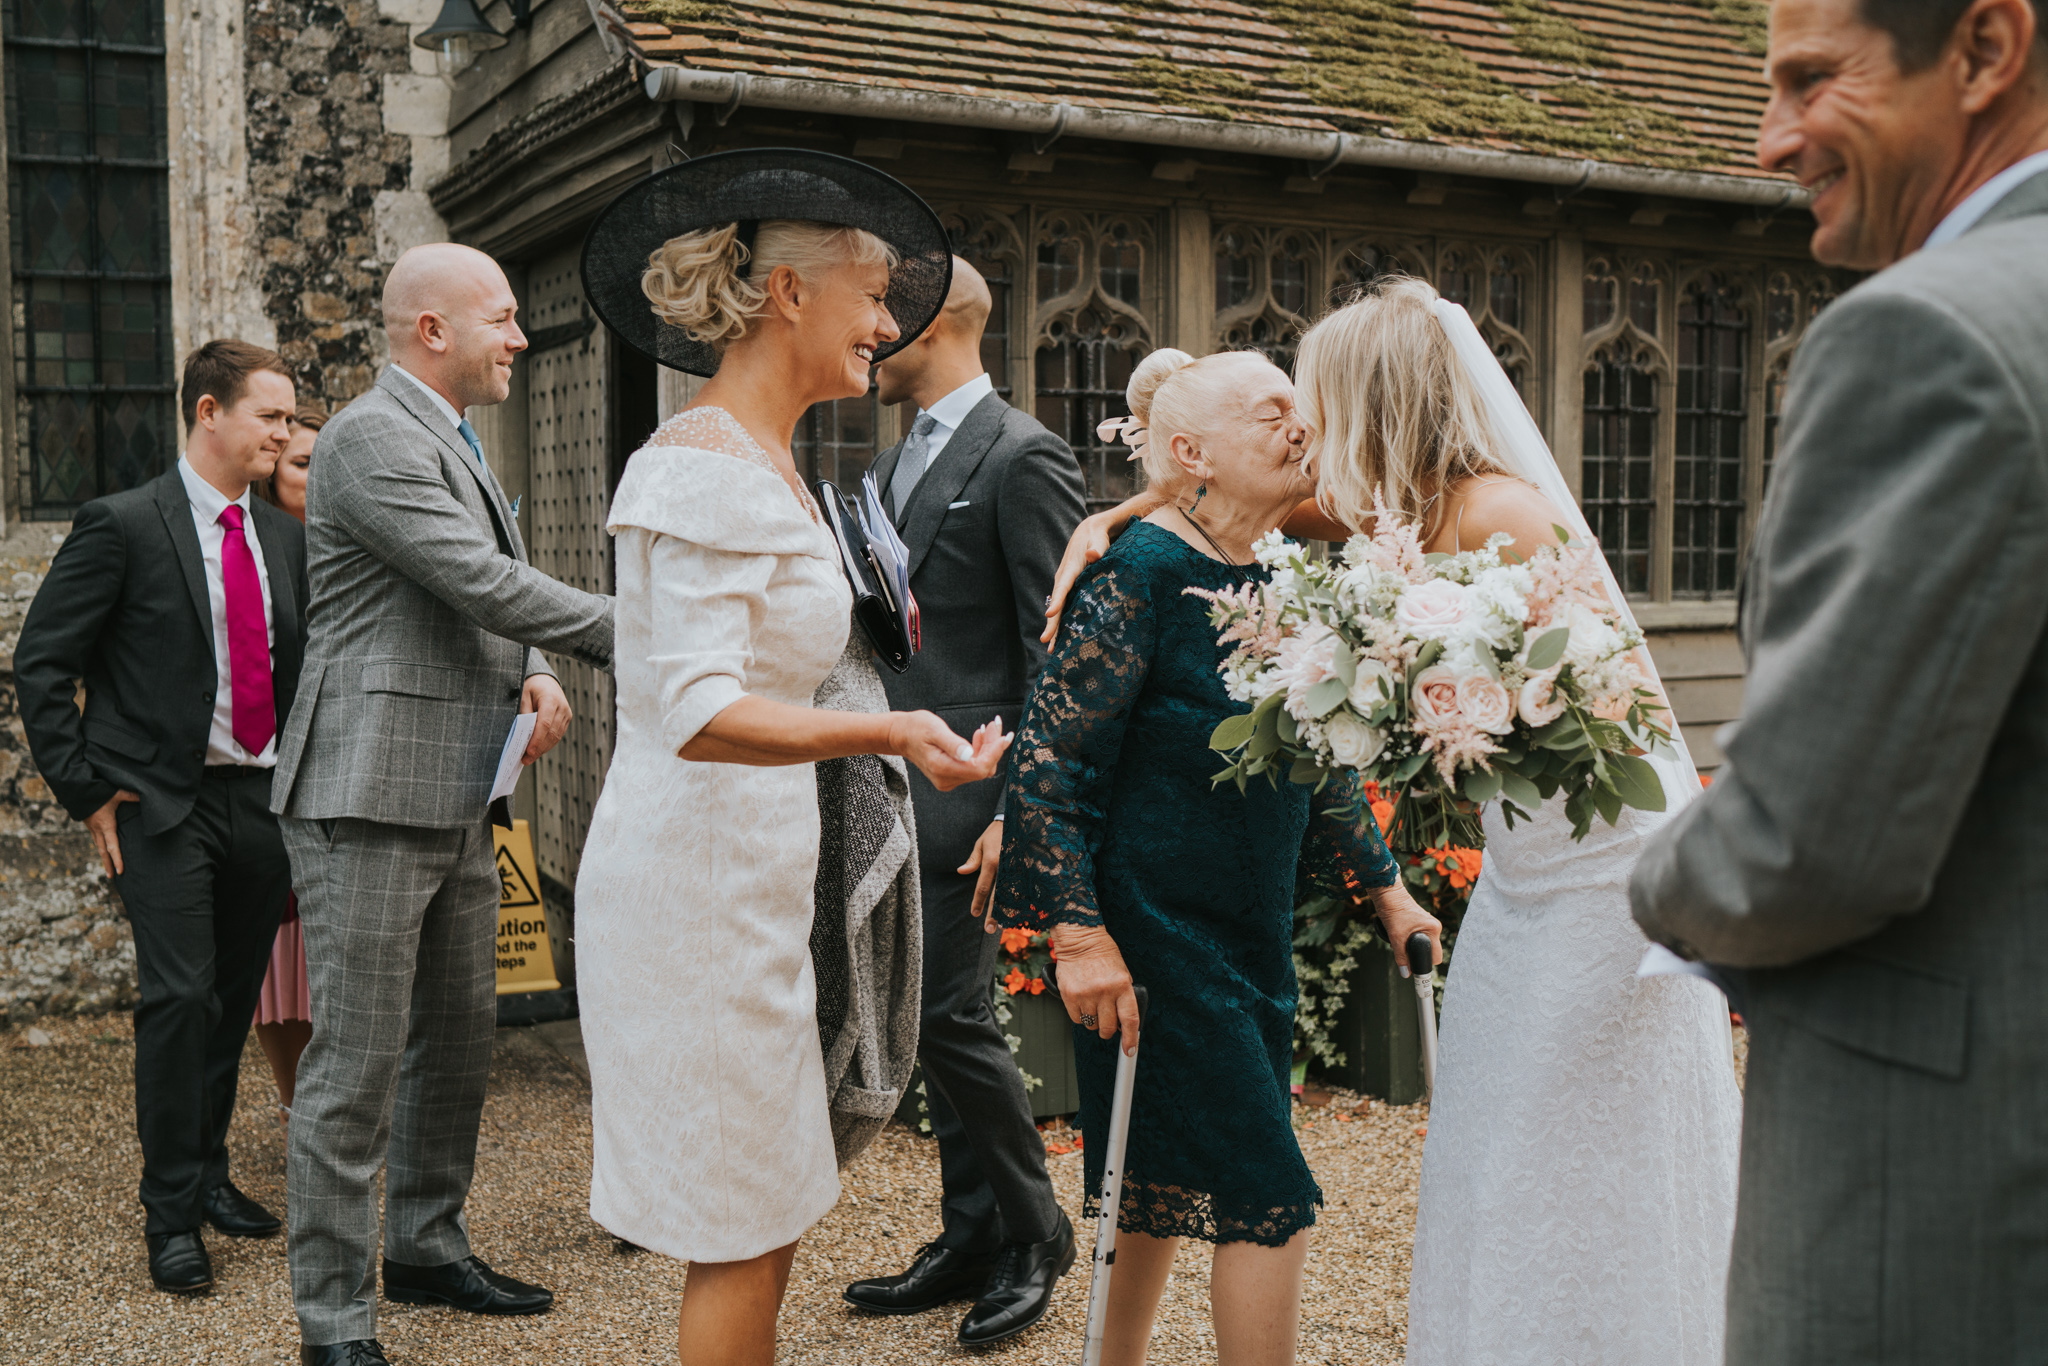 intimate-english-church-wedding-sarah-alex-colchester-essex-grace-elizabeth-colchester-essex-alternative-wedding-lifestyle-photographer-essex-suffolk-norfolk-devon (64 of 92).jpg